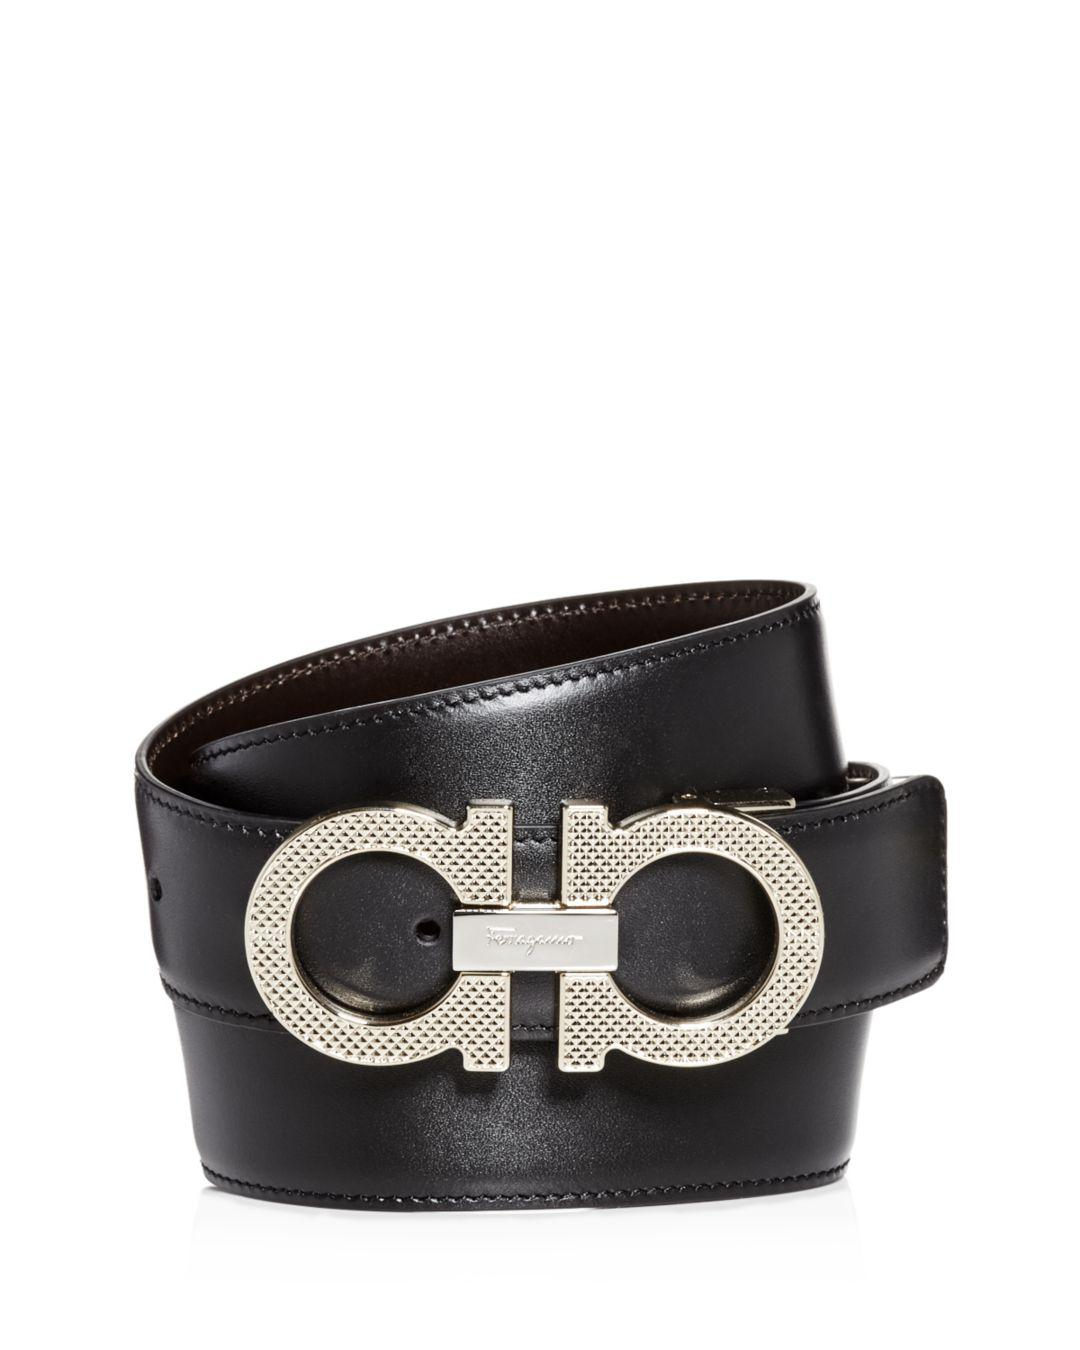 e9442f49e2d47 Ferragamo. Men s Black Etched Double Gancini Buckle Reversible Leather Belt